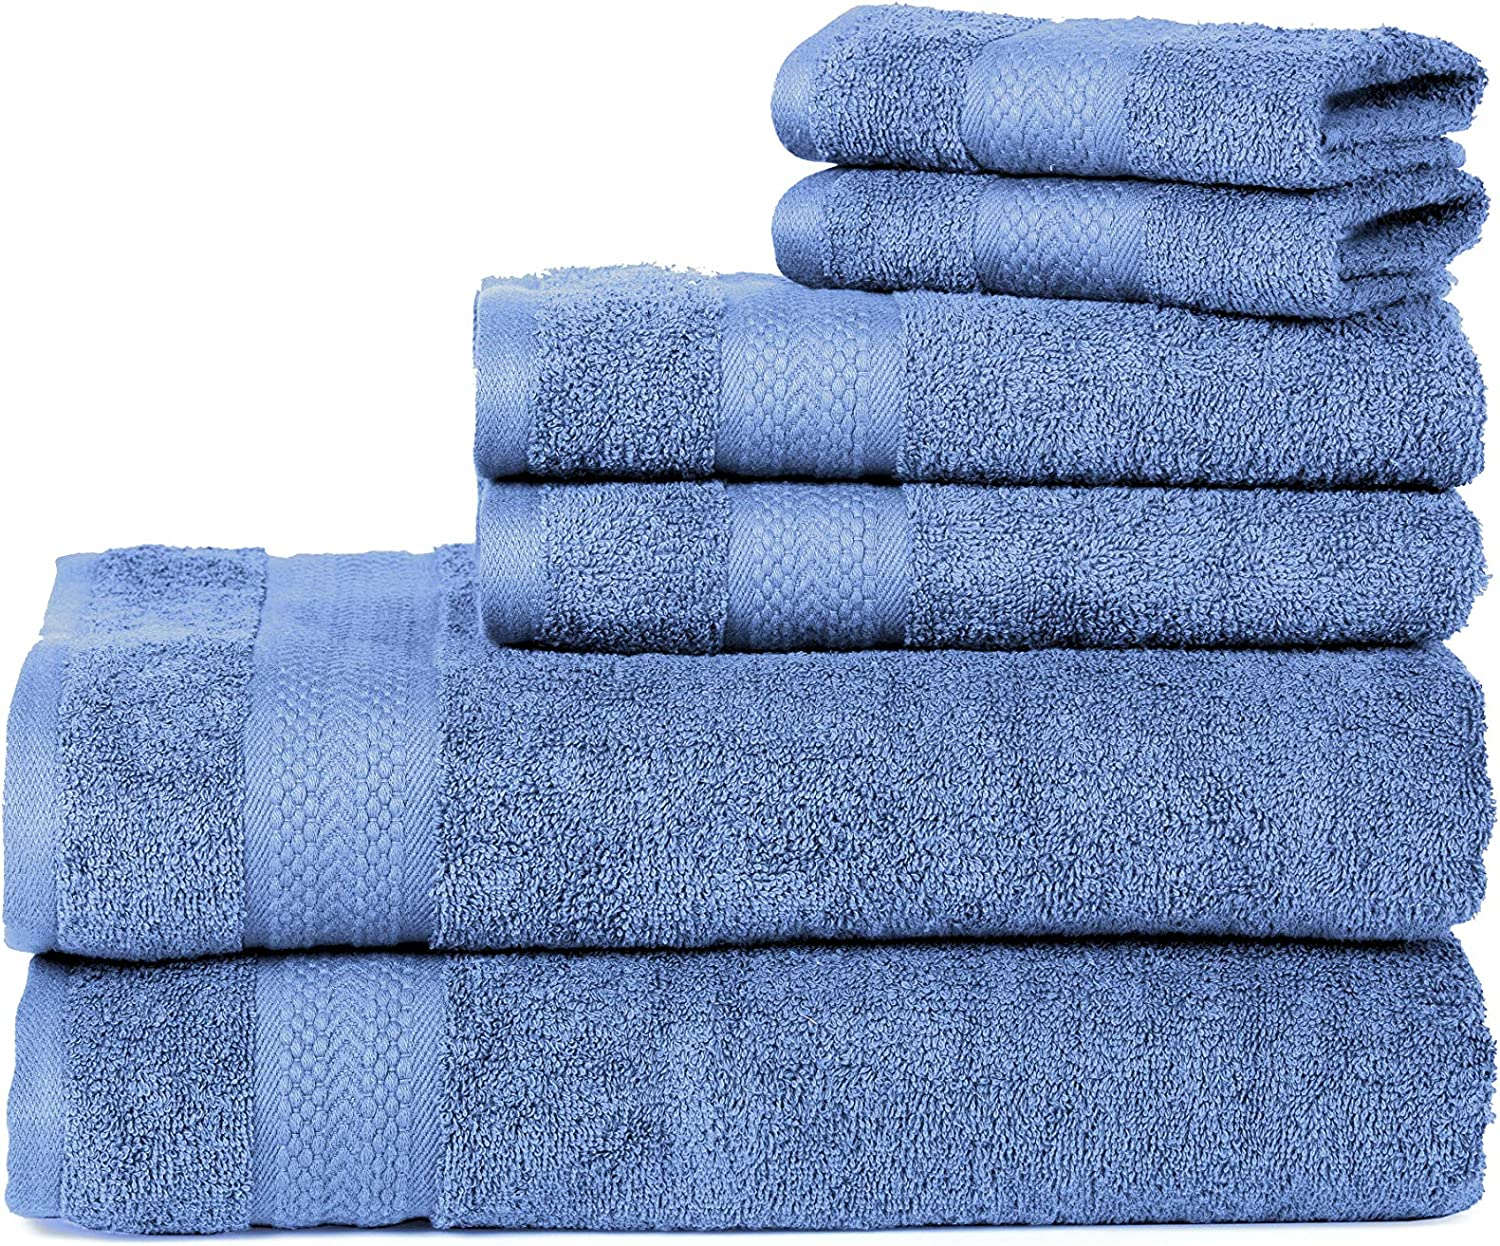 mds Towels Sets 100% Cotton 500GSM Highly Absorbent Quick Dry Bathroom Towels for Home, Kitchen, Hotel & Spa (2 Bath Towels, 2 Hand Towels and 2 washcloths) Wedgewood